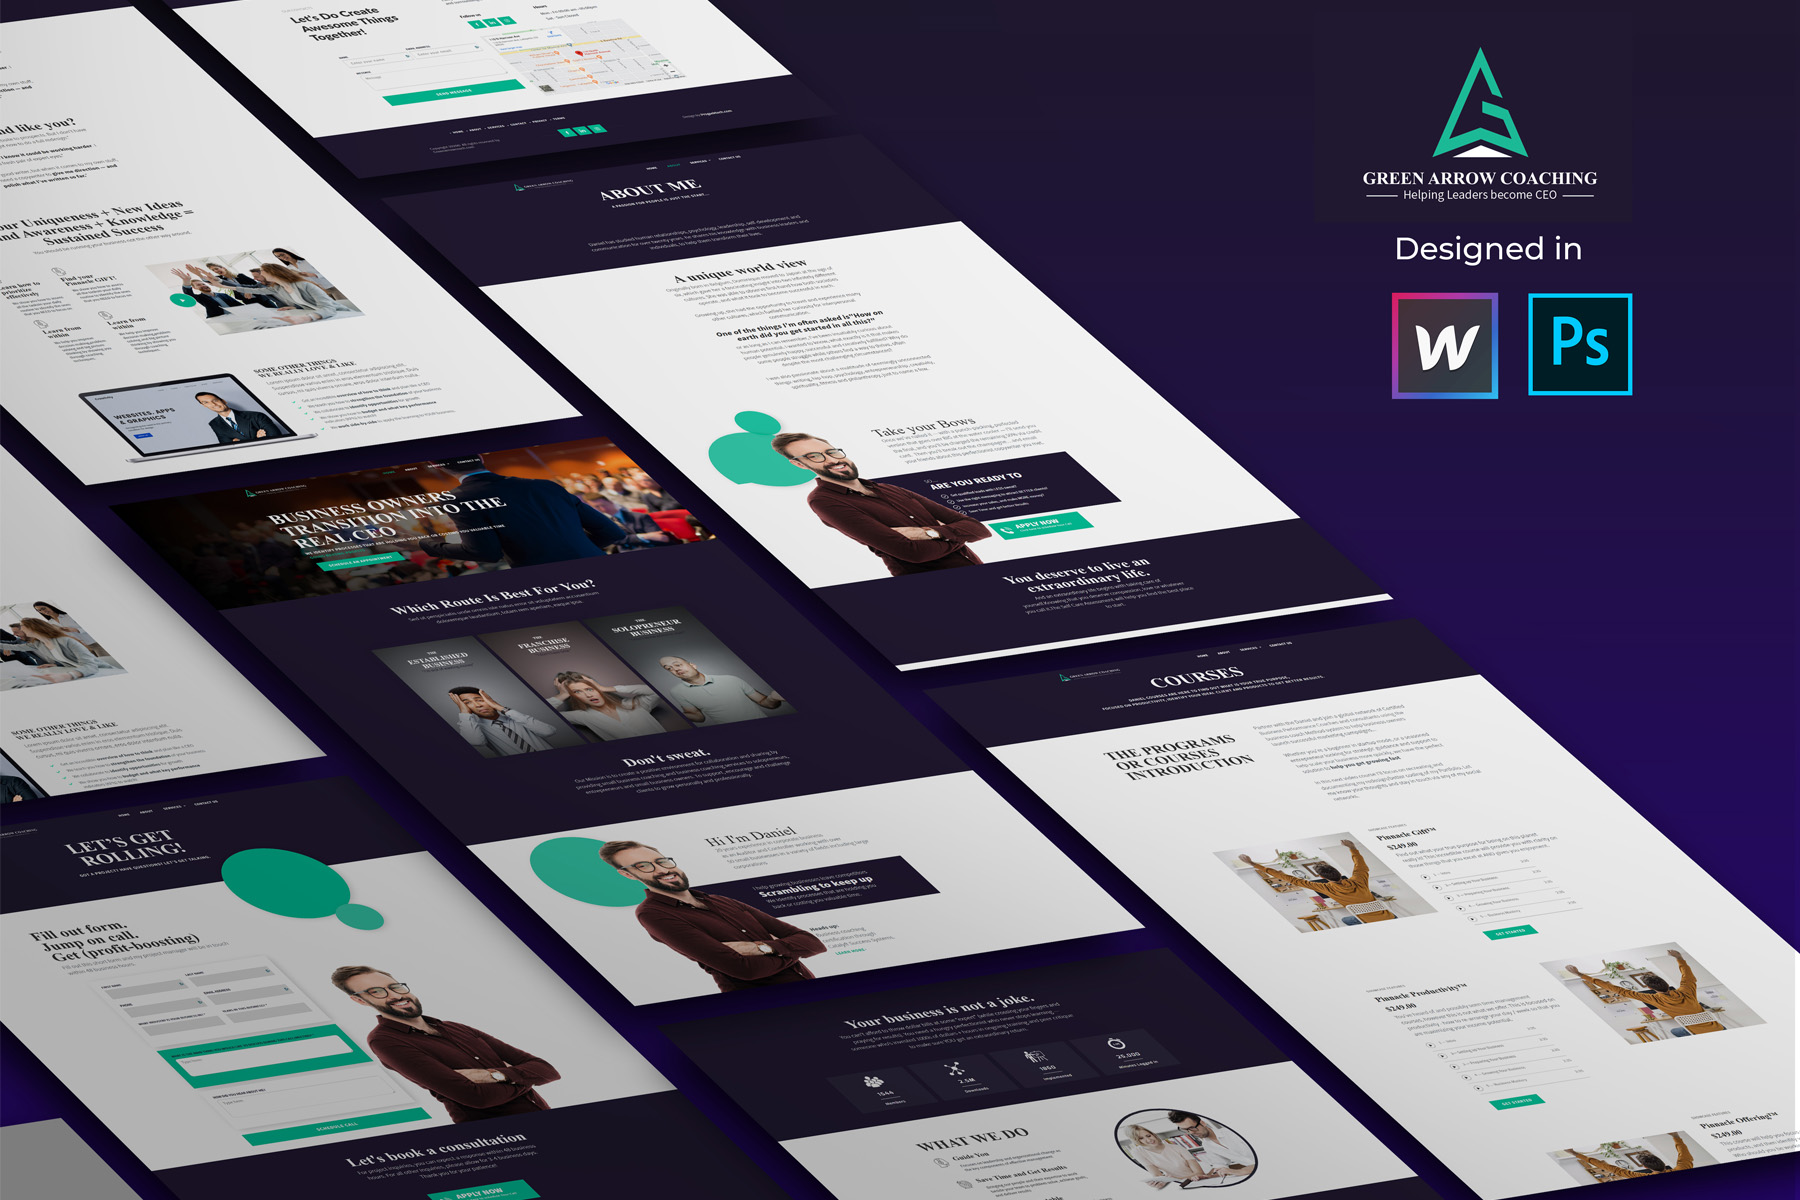 Coaching-consulting webflow template